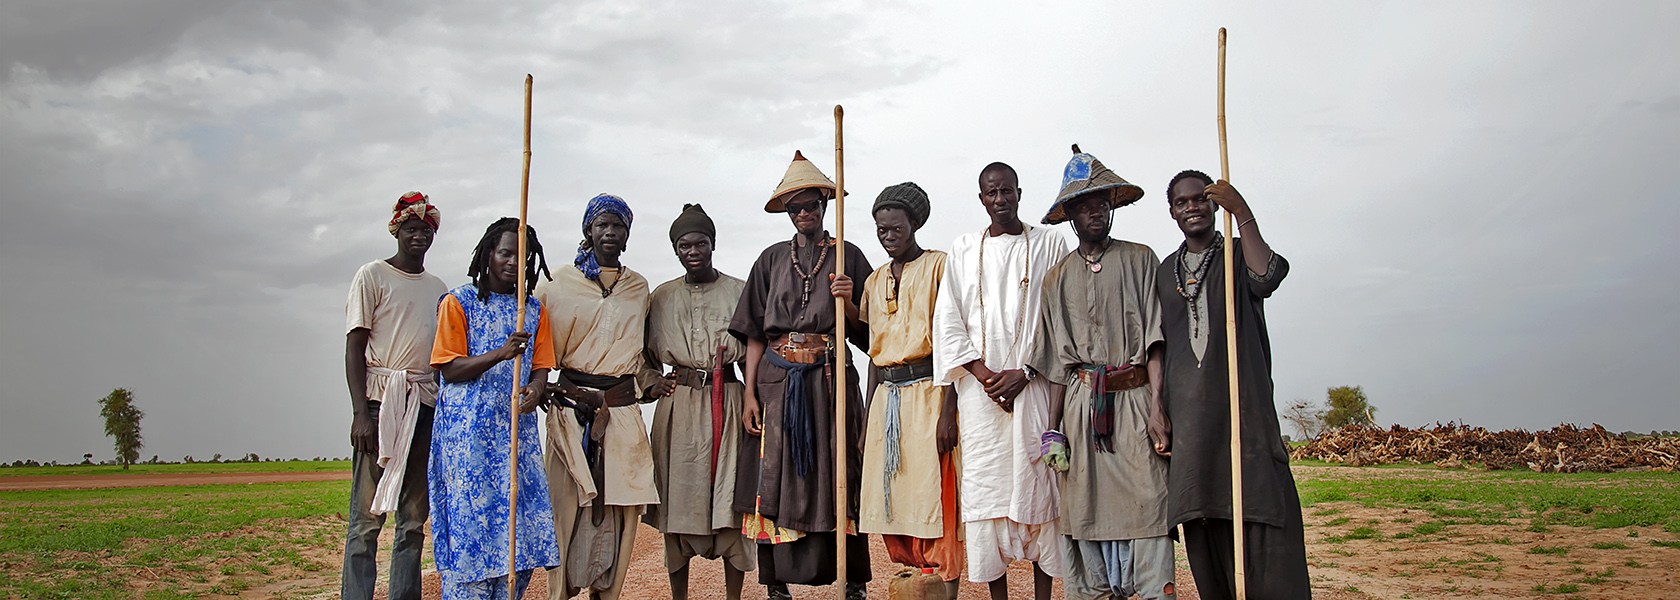 Baye Fall at Dnindy, Touba, 2014_hero.jpg